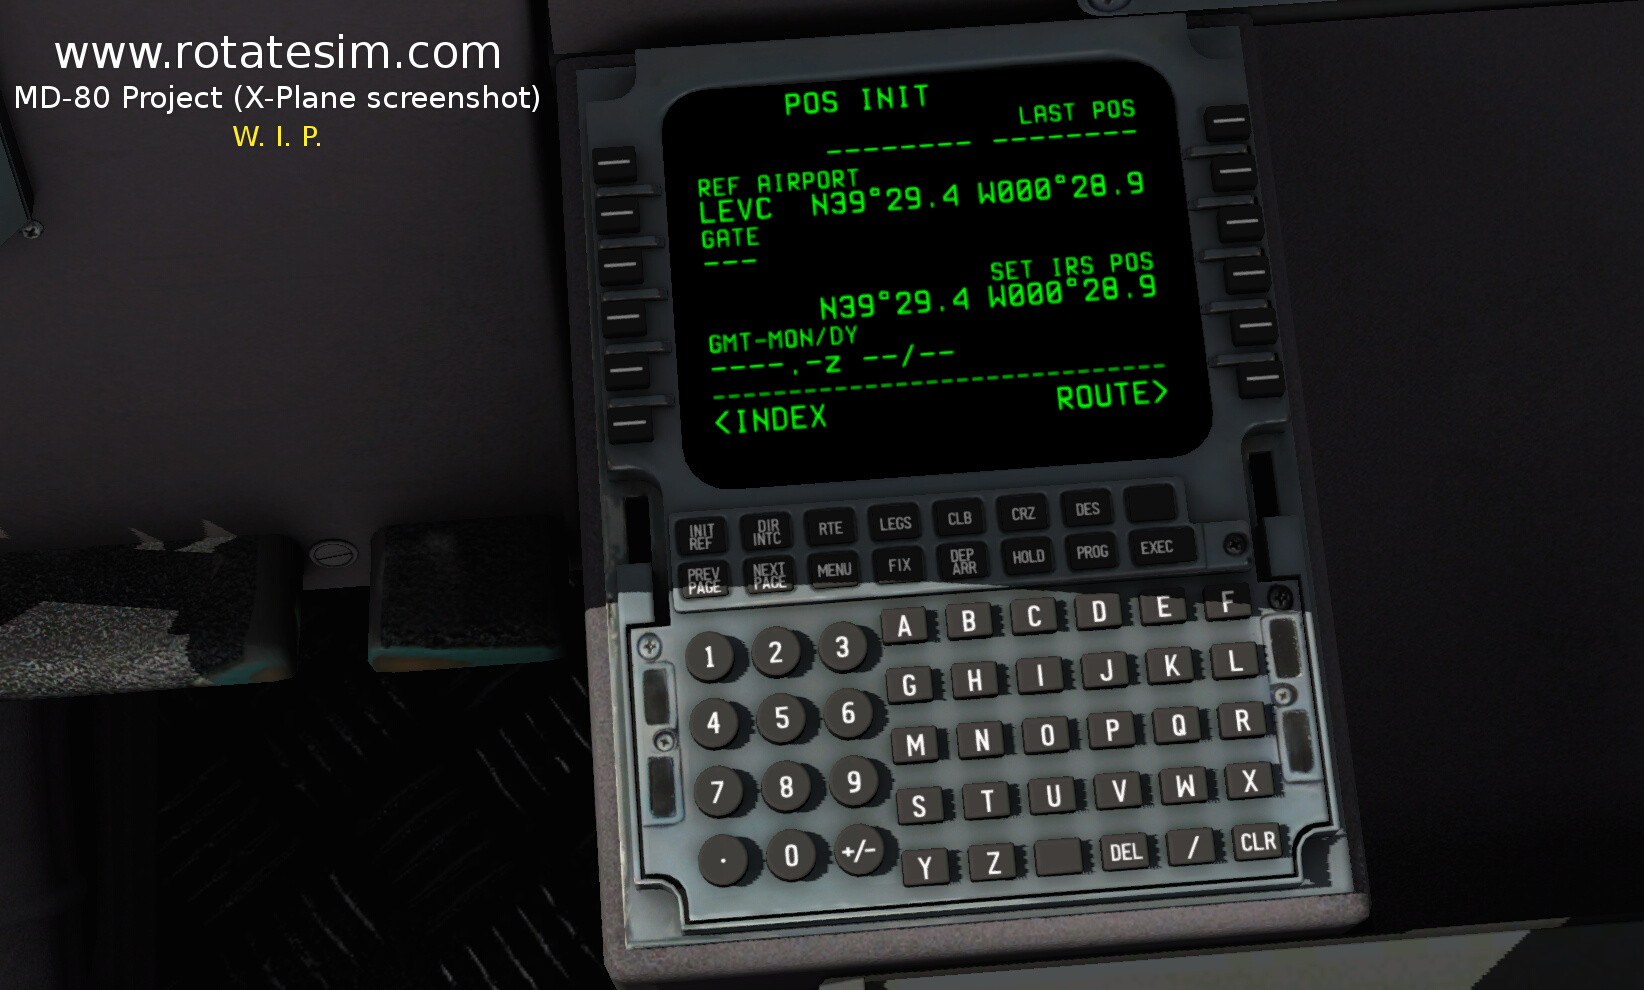 MD-80 screenshot FMC 02 POS INIT